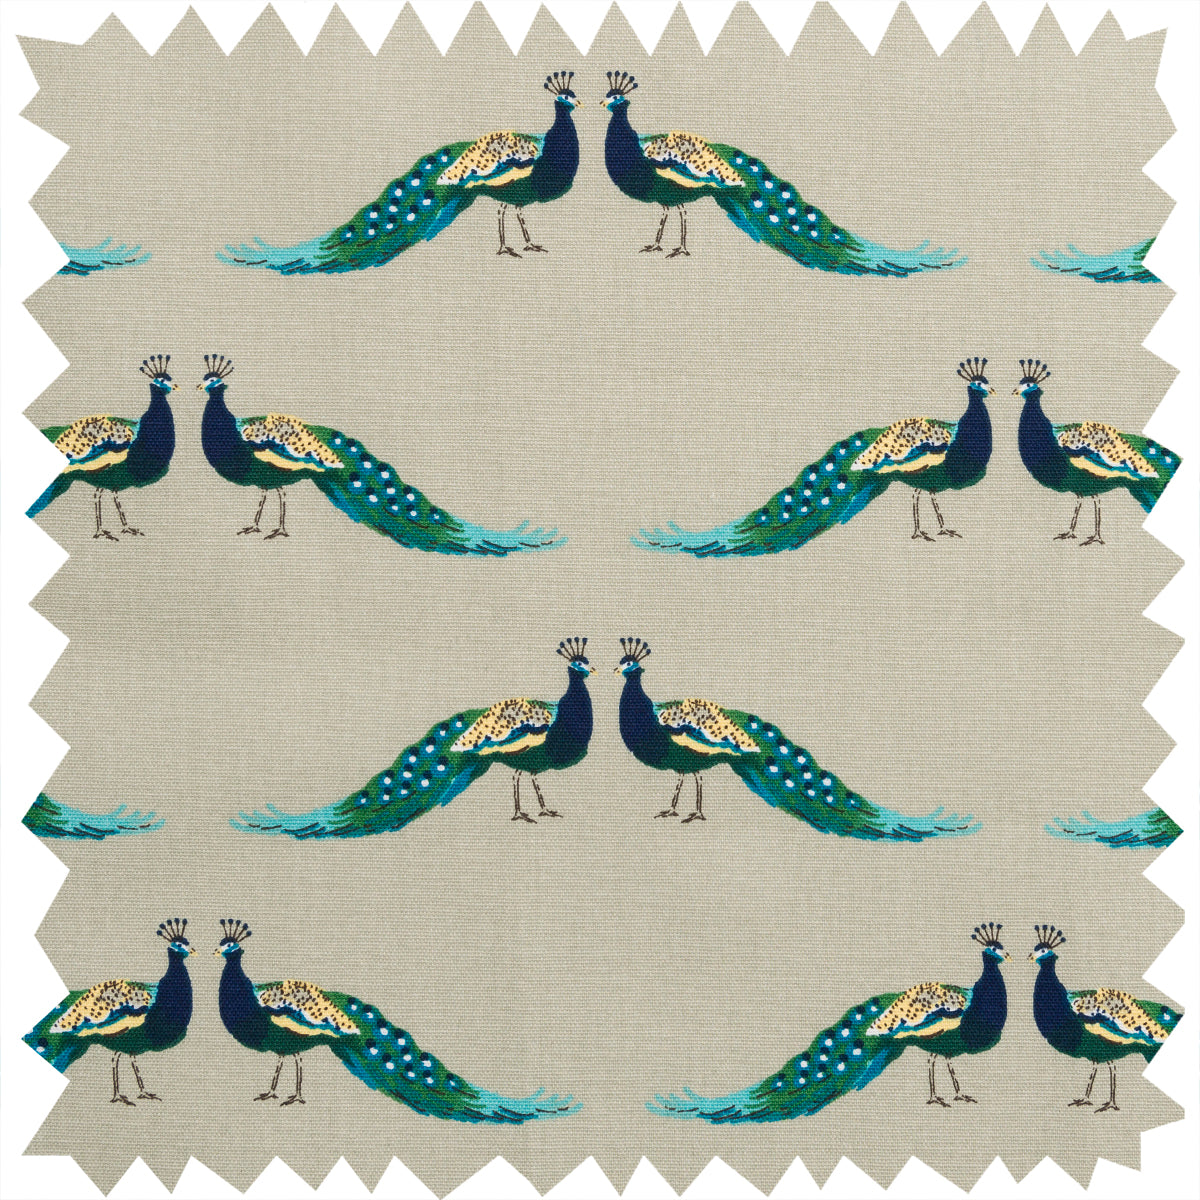 Peacocks Fabric by the Metre